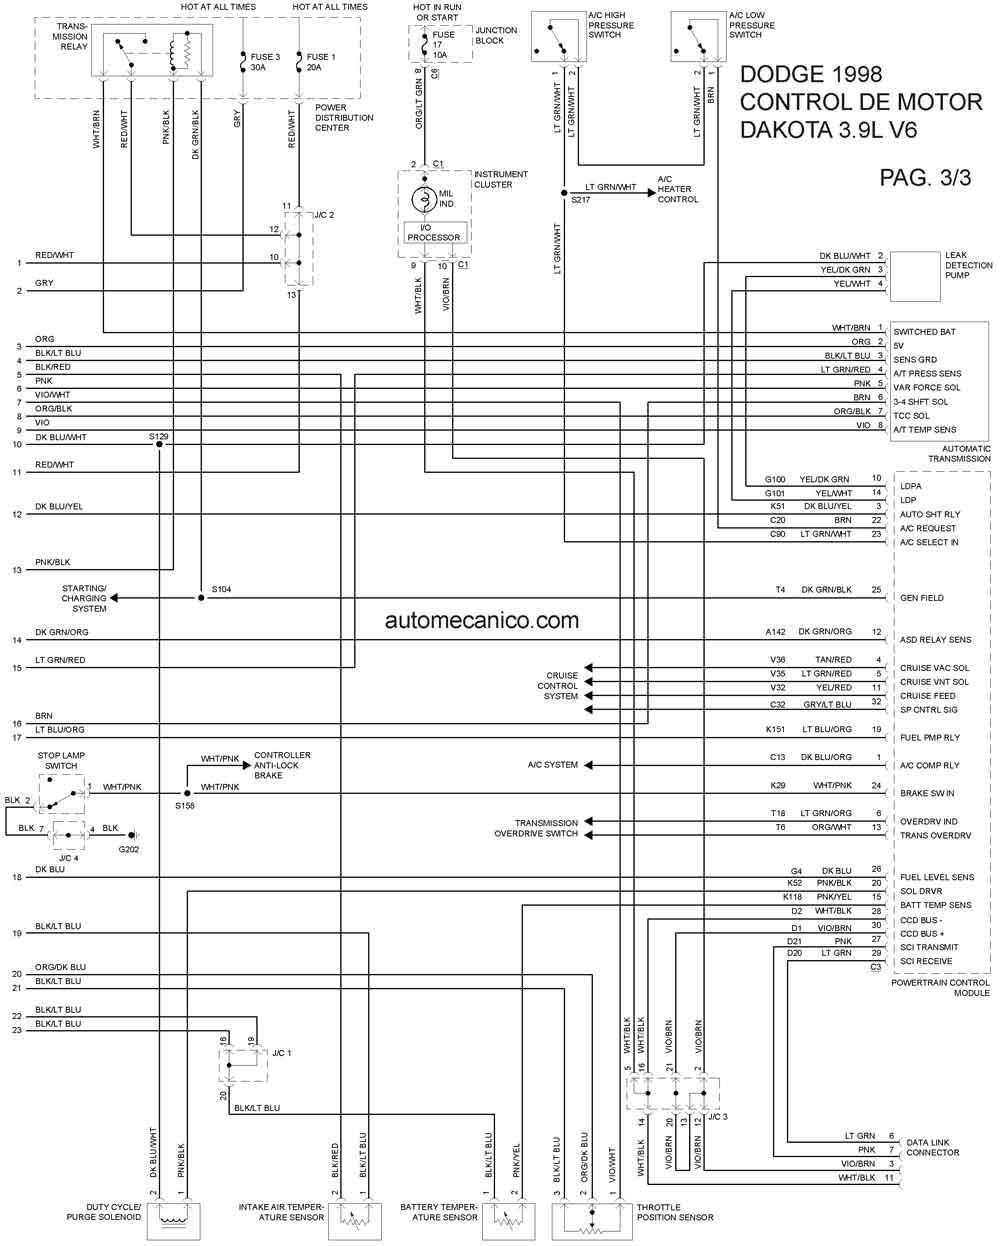 2004 Dodge 1500 Trailer Ke Wiring Diagram. Dodge. Auto